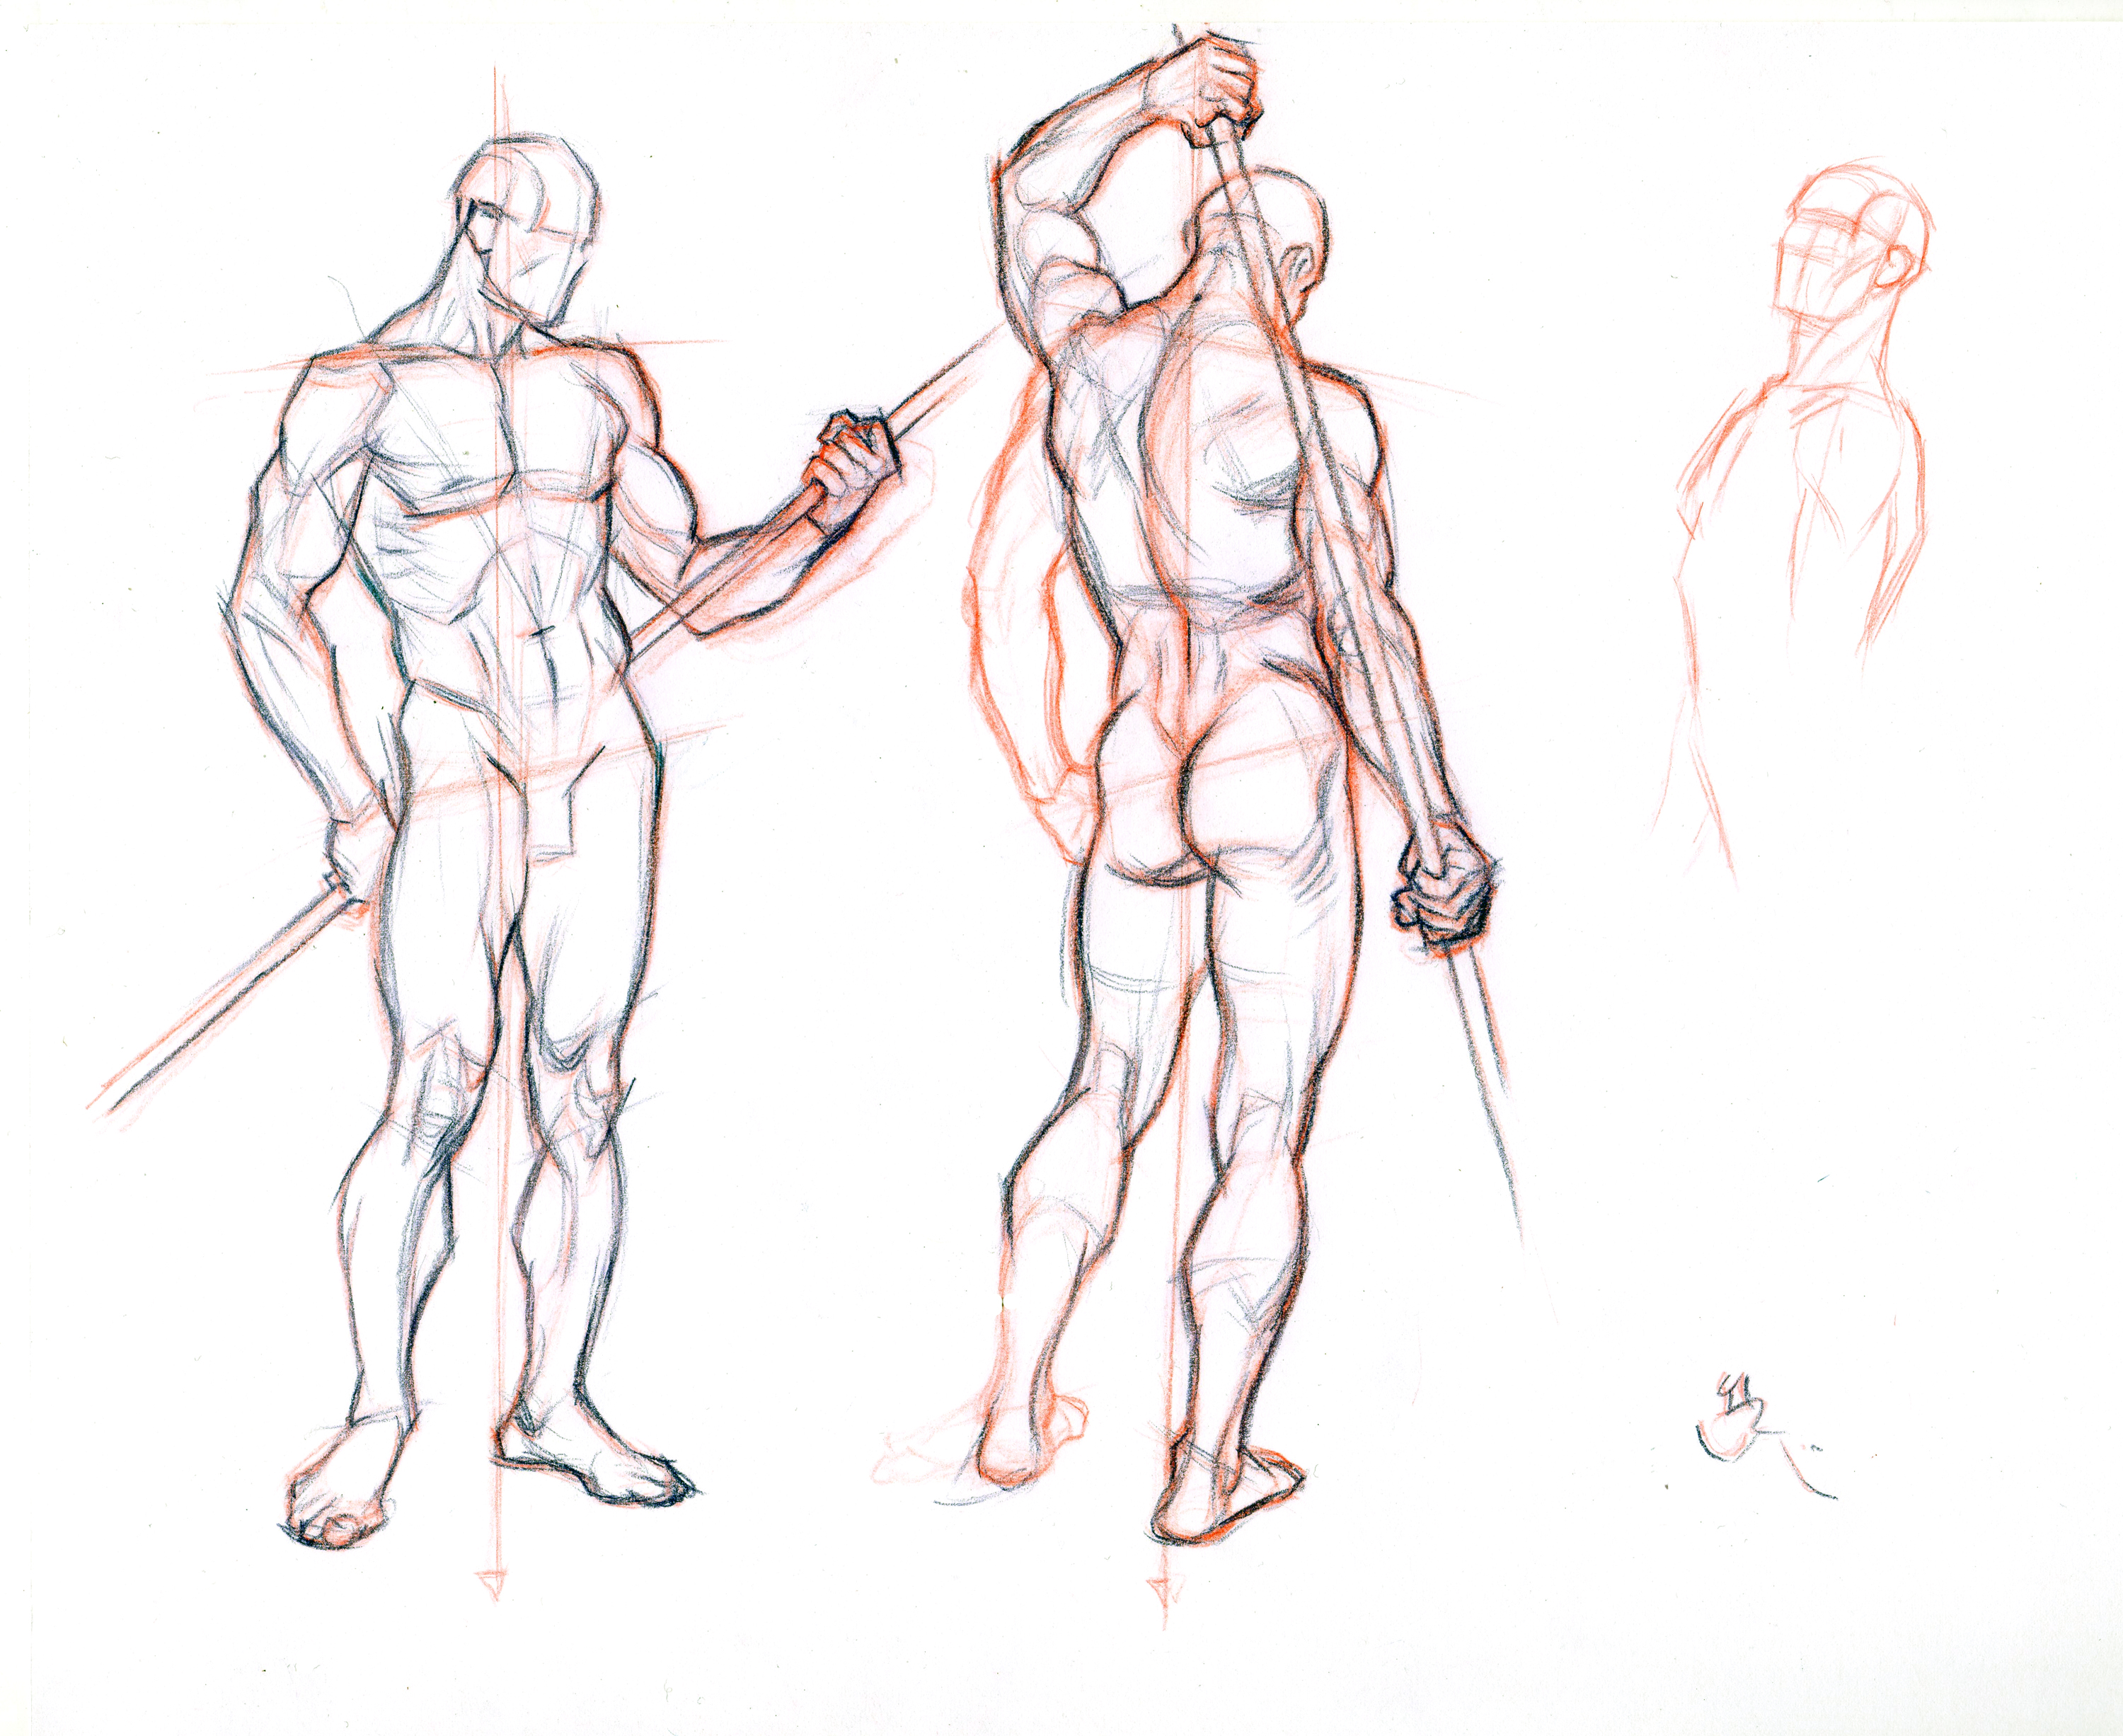 3000x2453 Figure Drawing Without A Model 2 By Abdonjromero